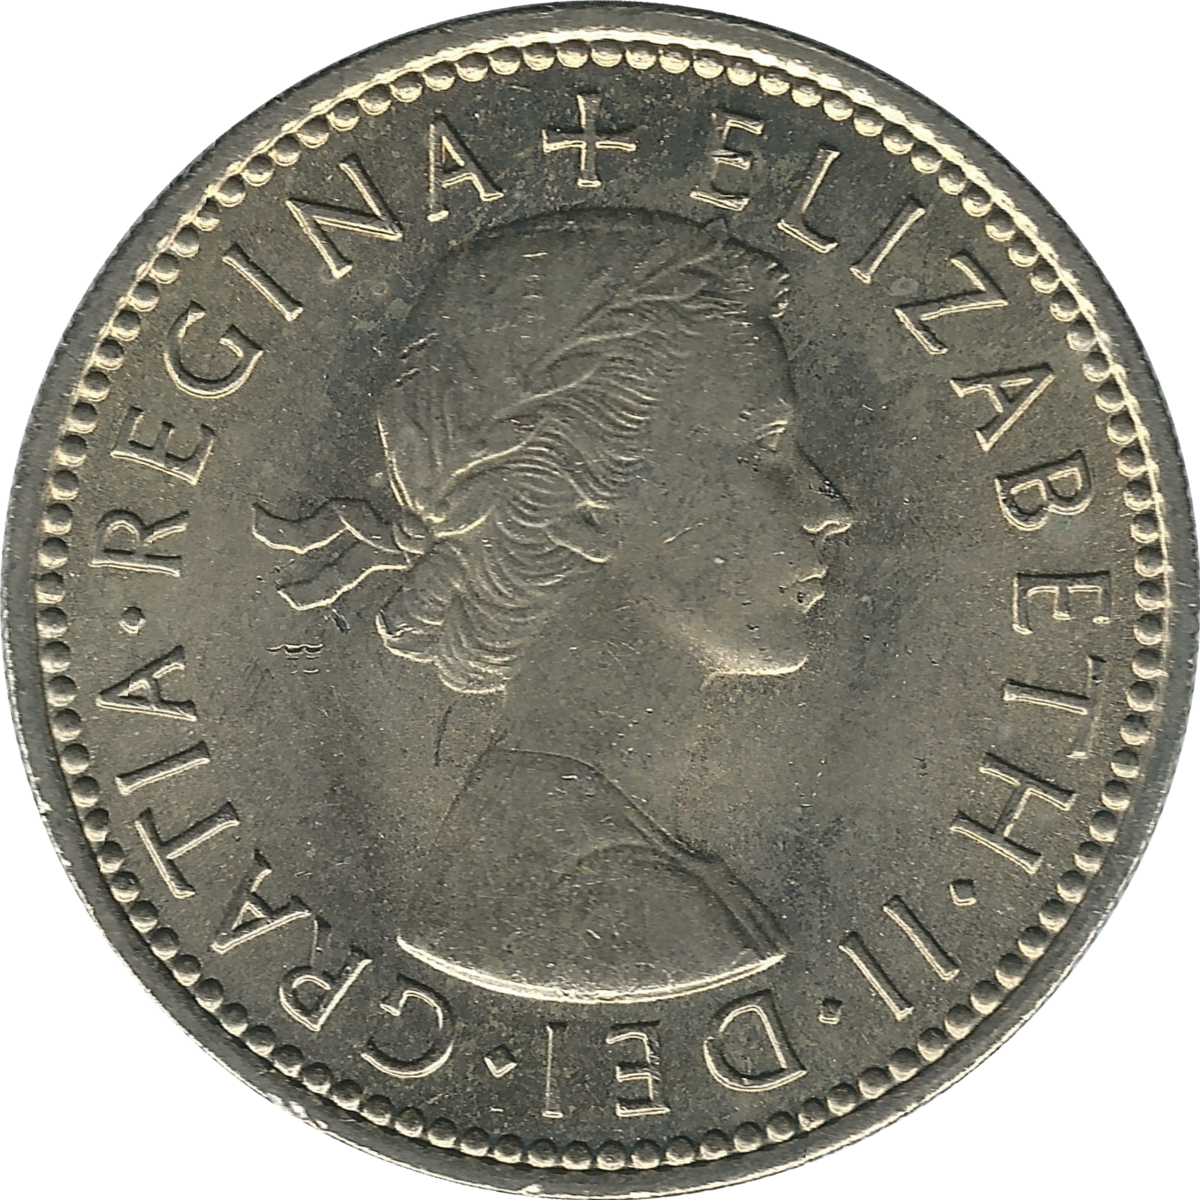 How Much Is A Shilling Worth?